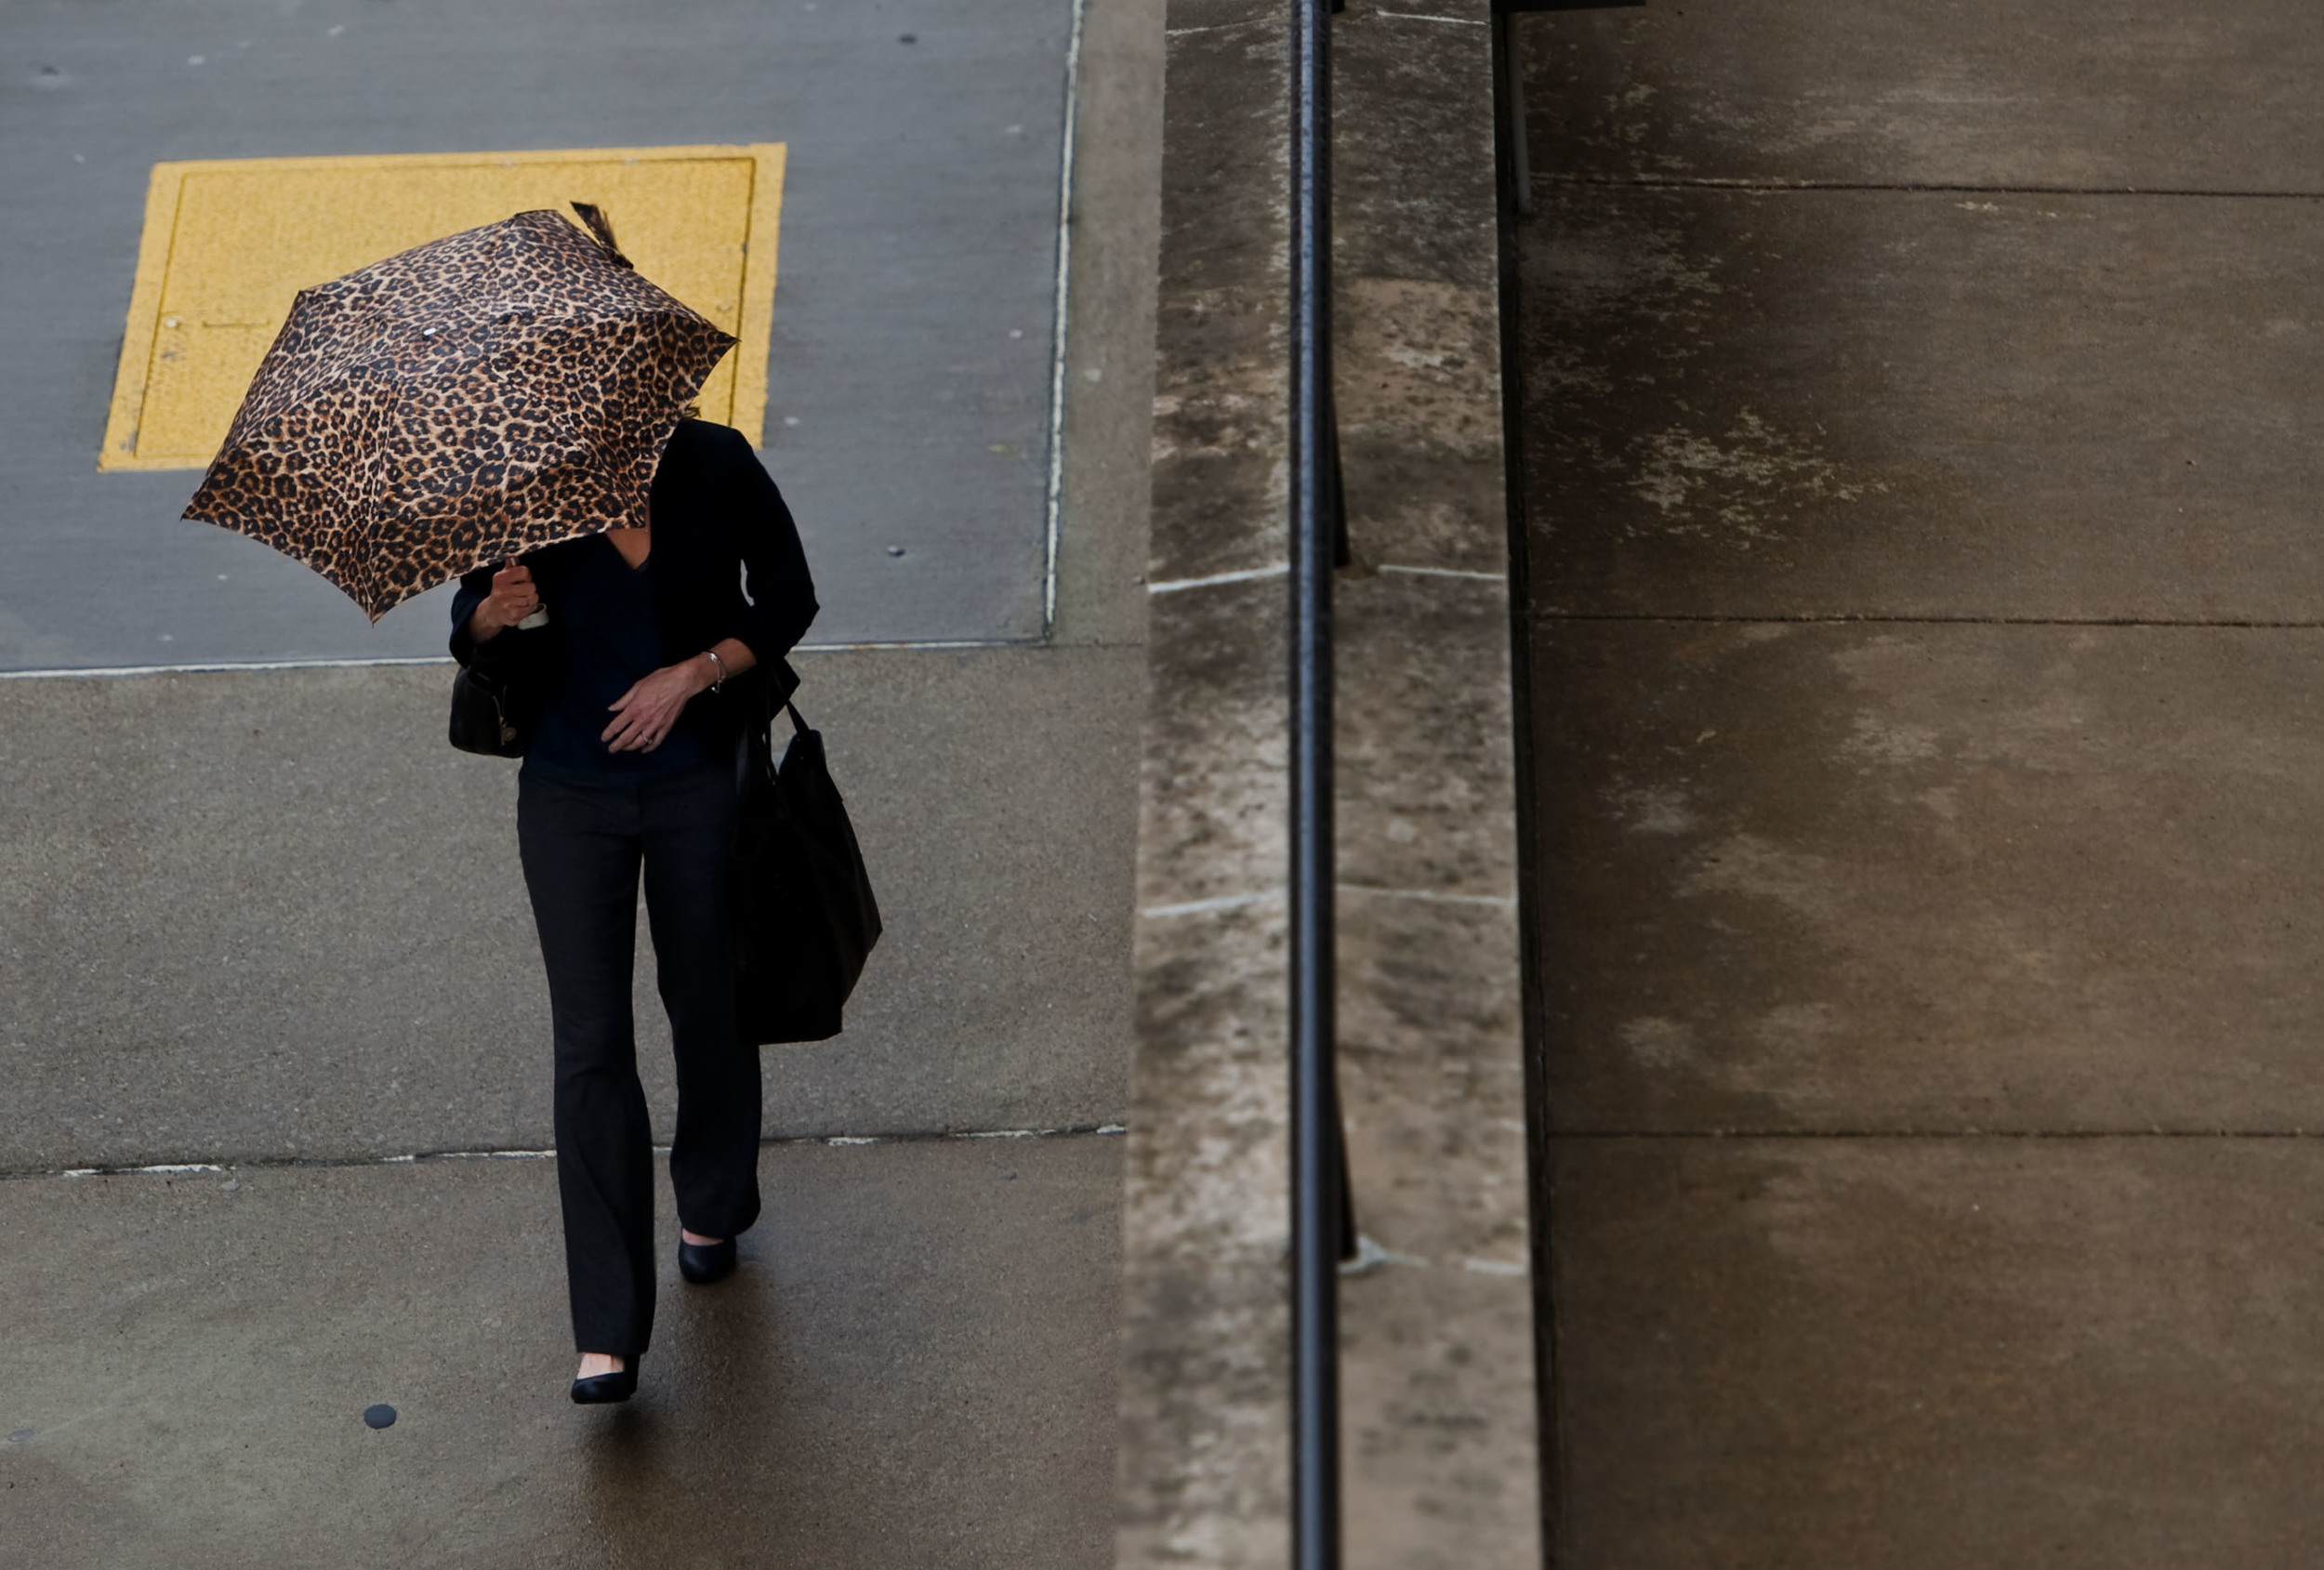 A pedestrian shields herself from the rain with an animal print umbrella on Thursday, March 10, 2016 along Otterman Street in Greensburg.